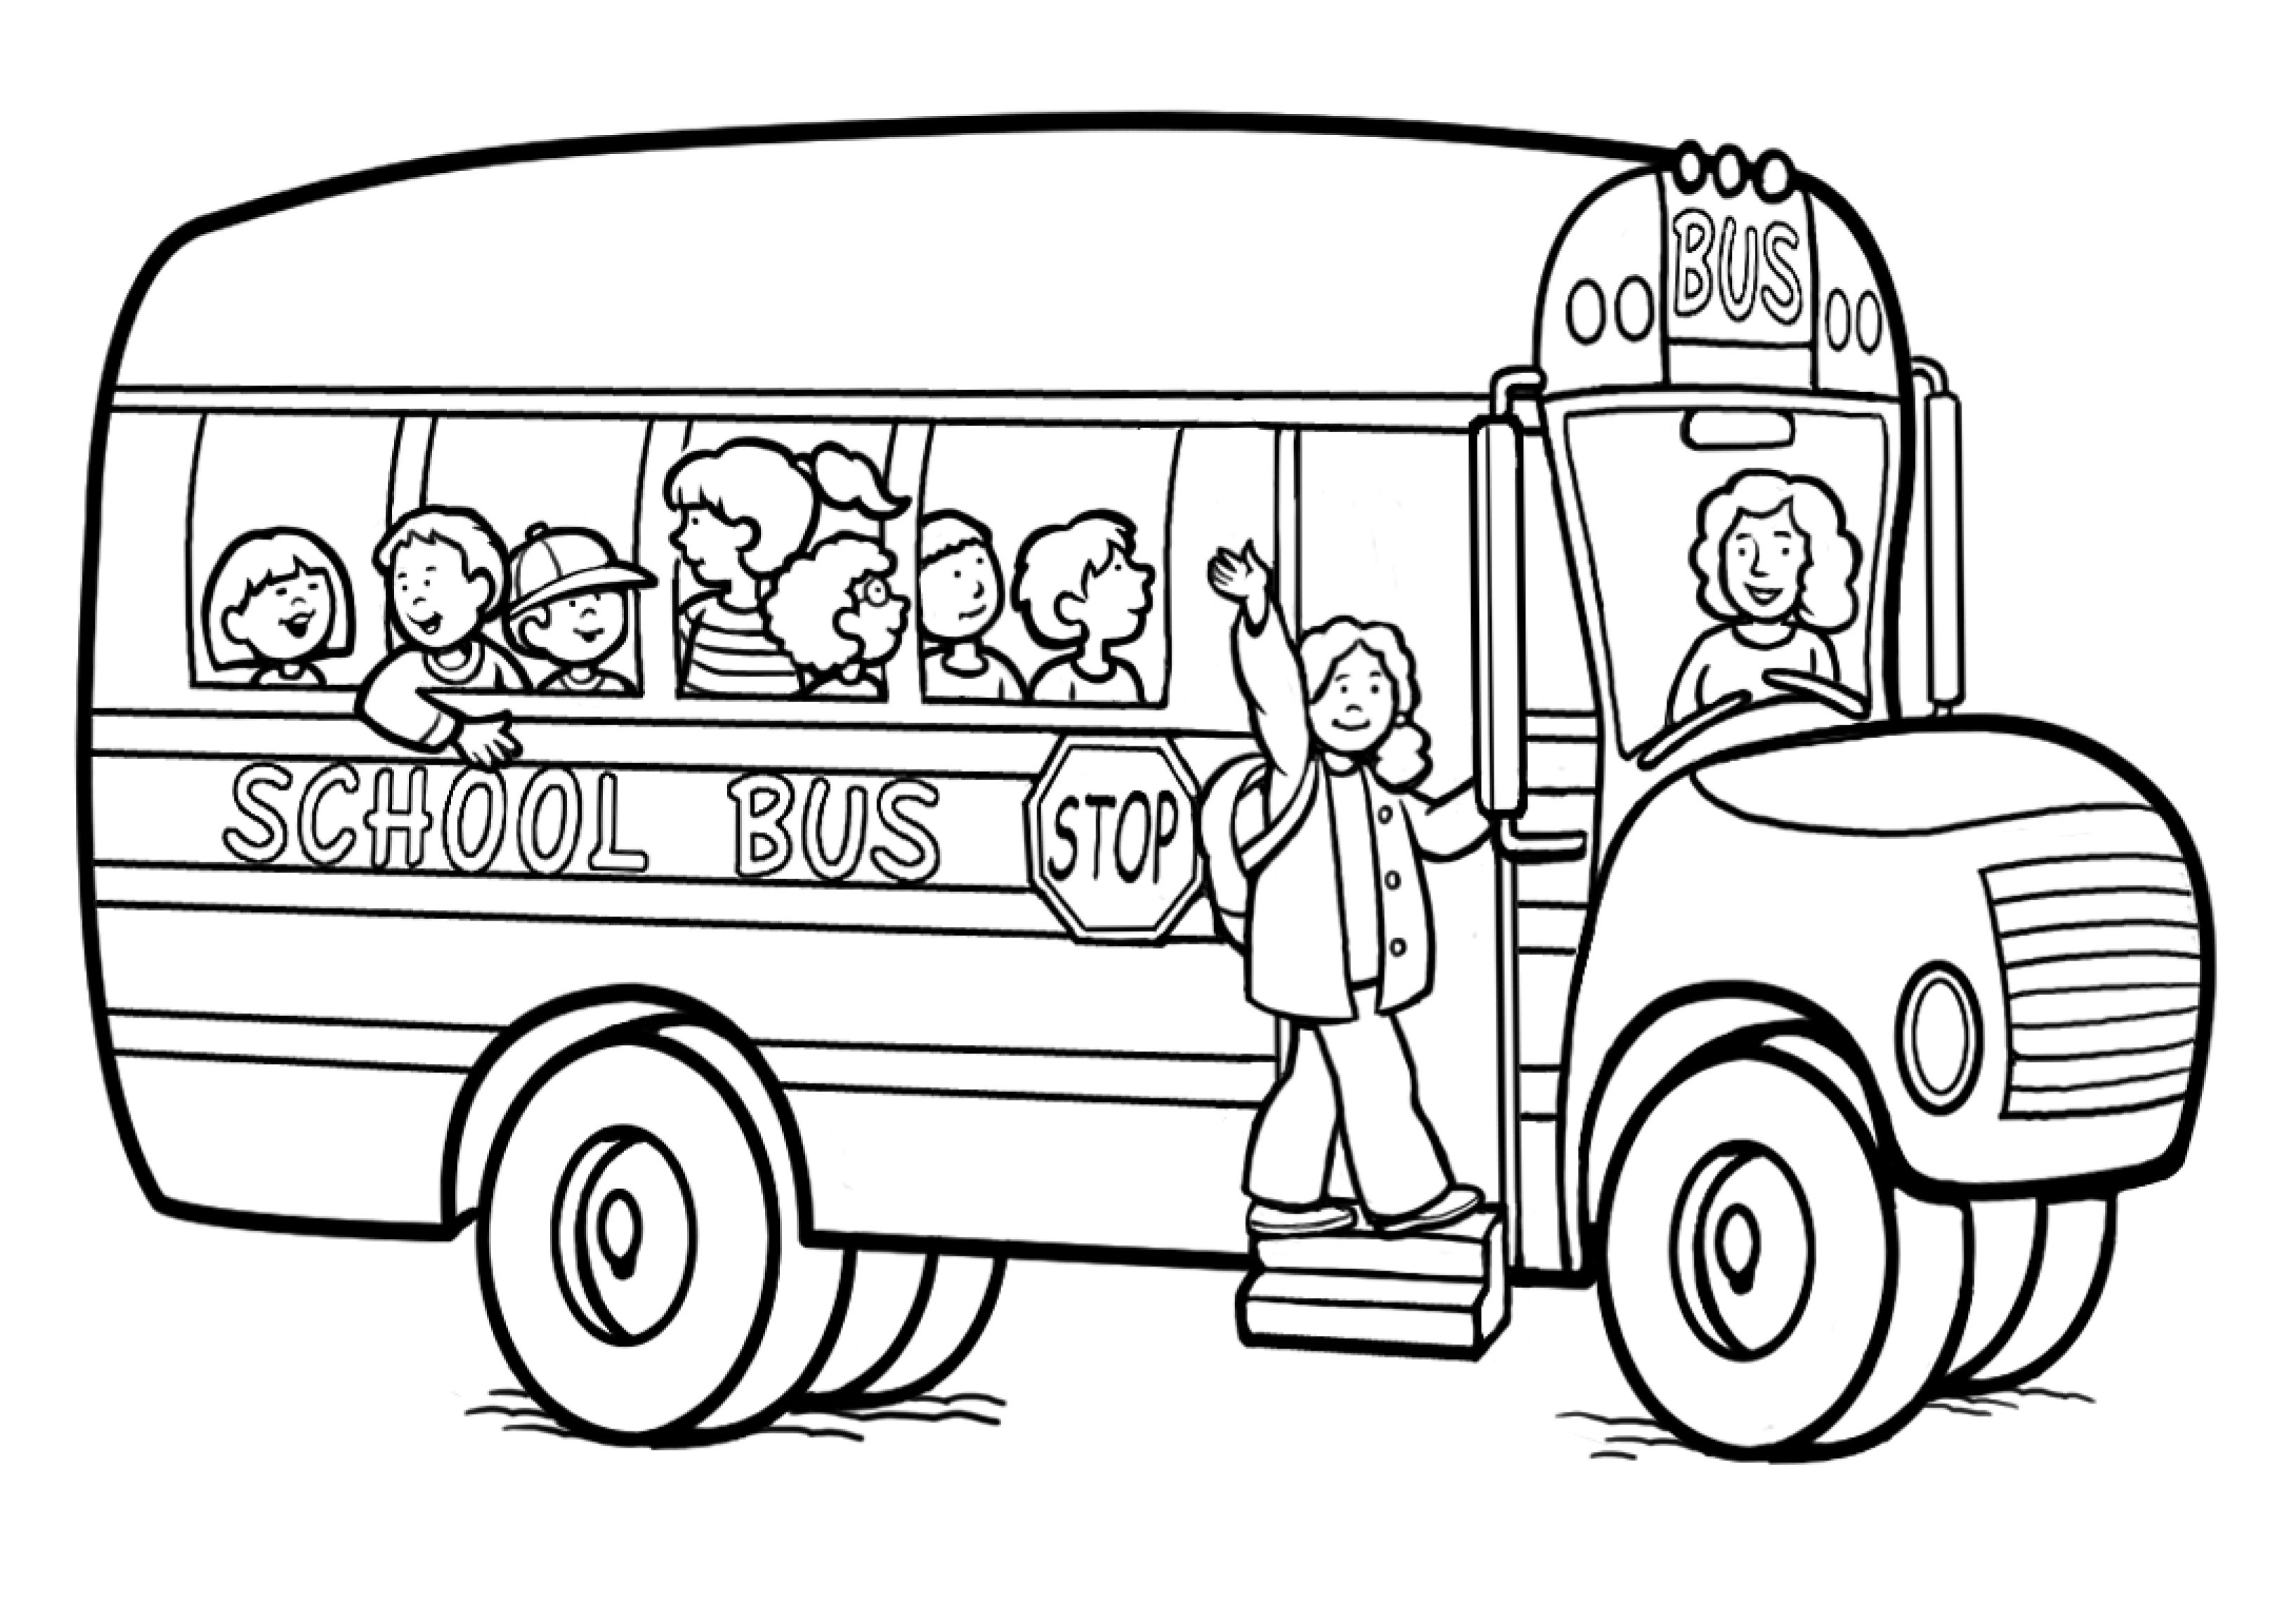 Free Printable School Bus Coloring Pages For Kids - Free Printable School Bus Coloring Pages